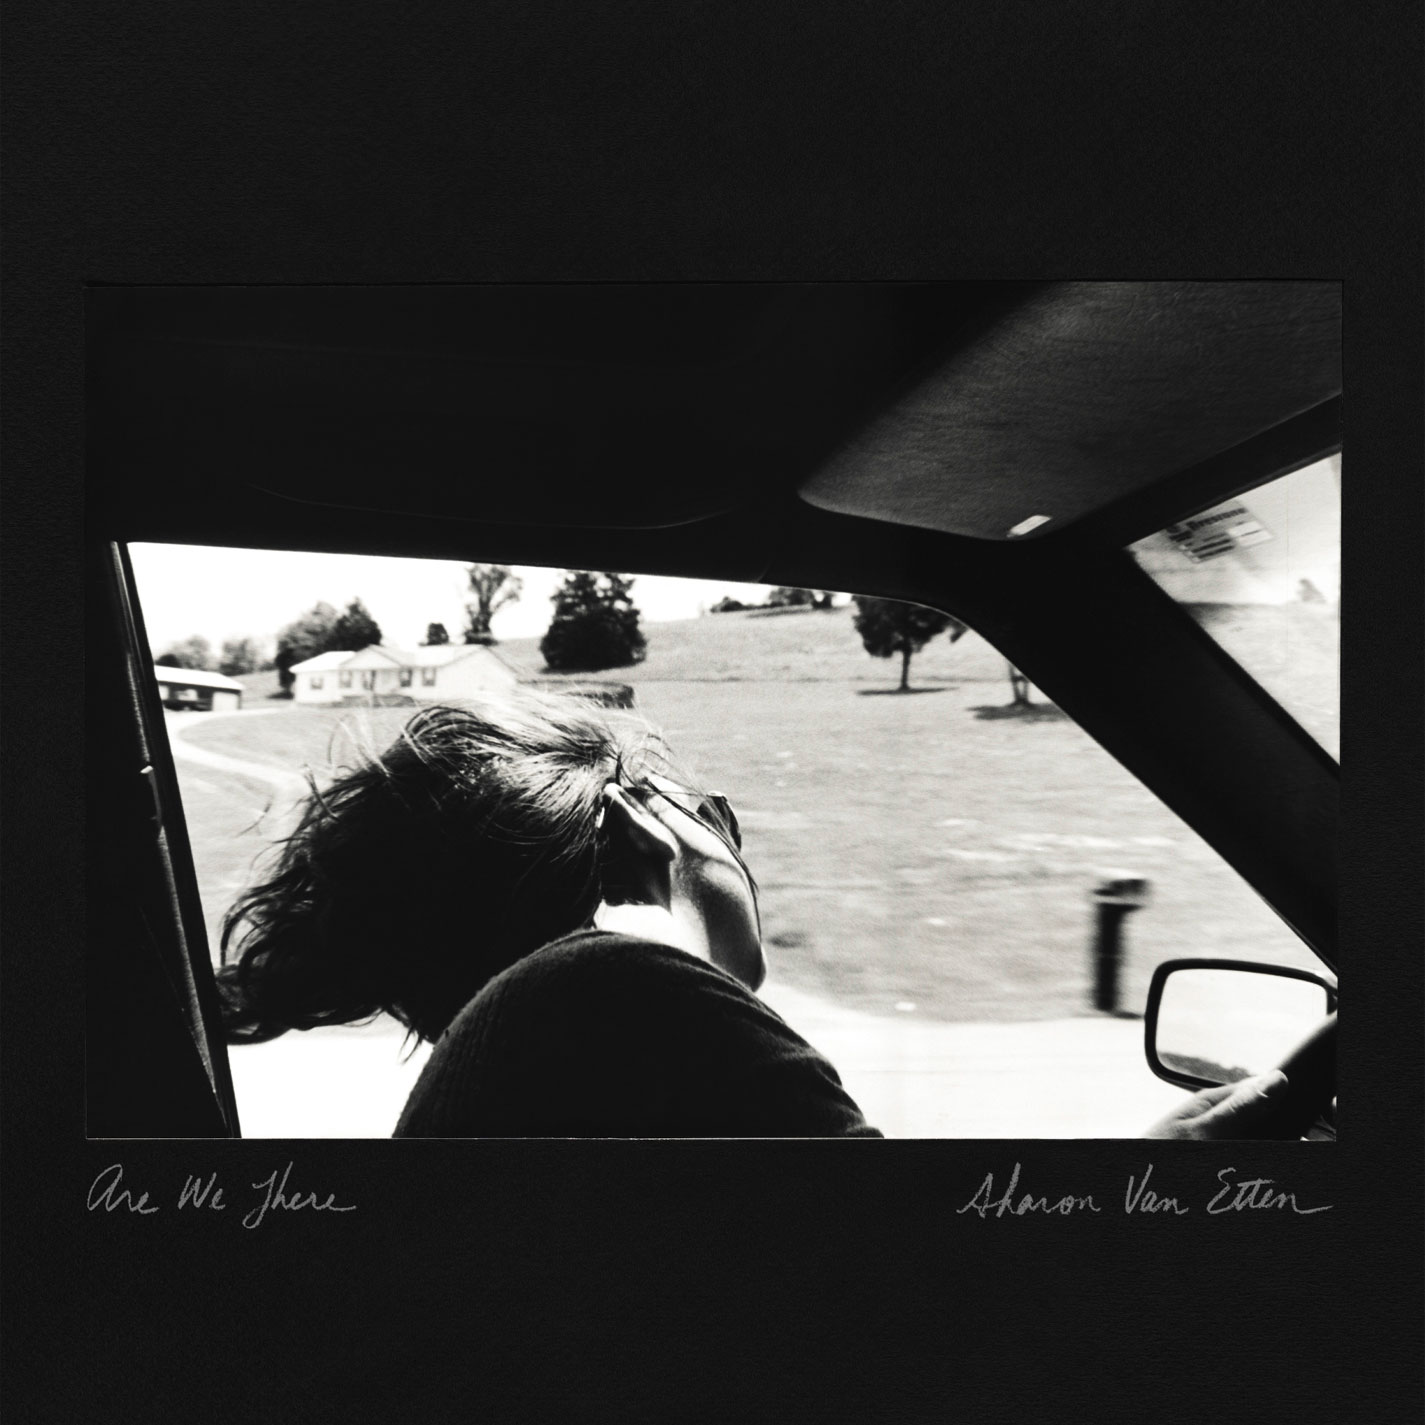 Sharon Van Etten, Are We There